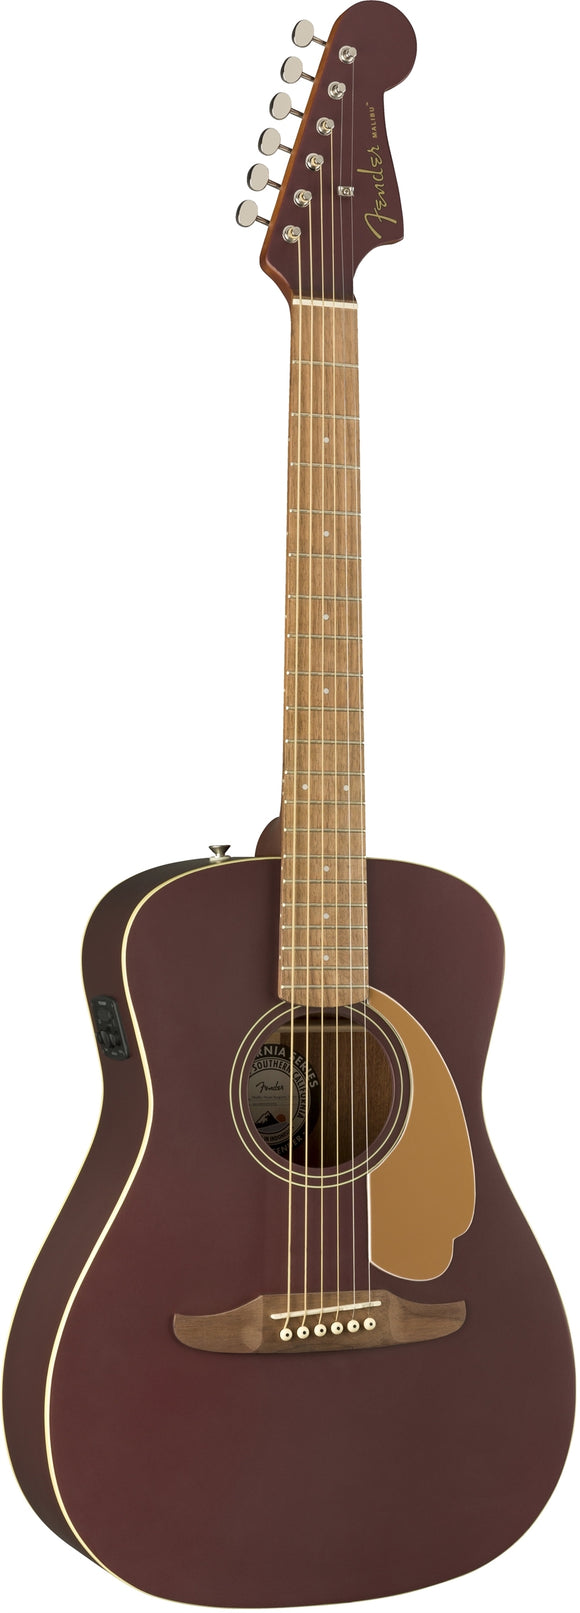 Fender Malibu Player Acoustic/Electric Guitar - Burgundy Satin